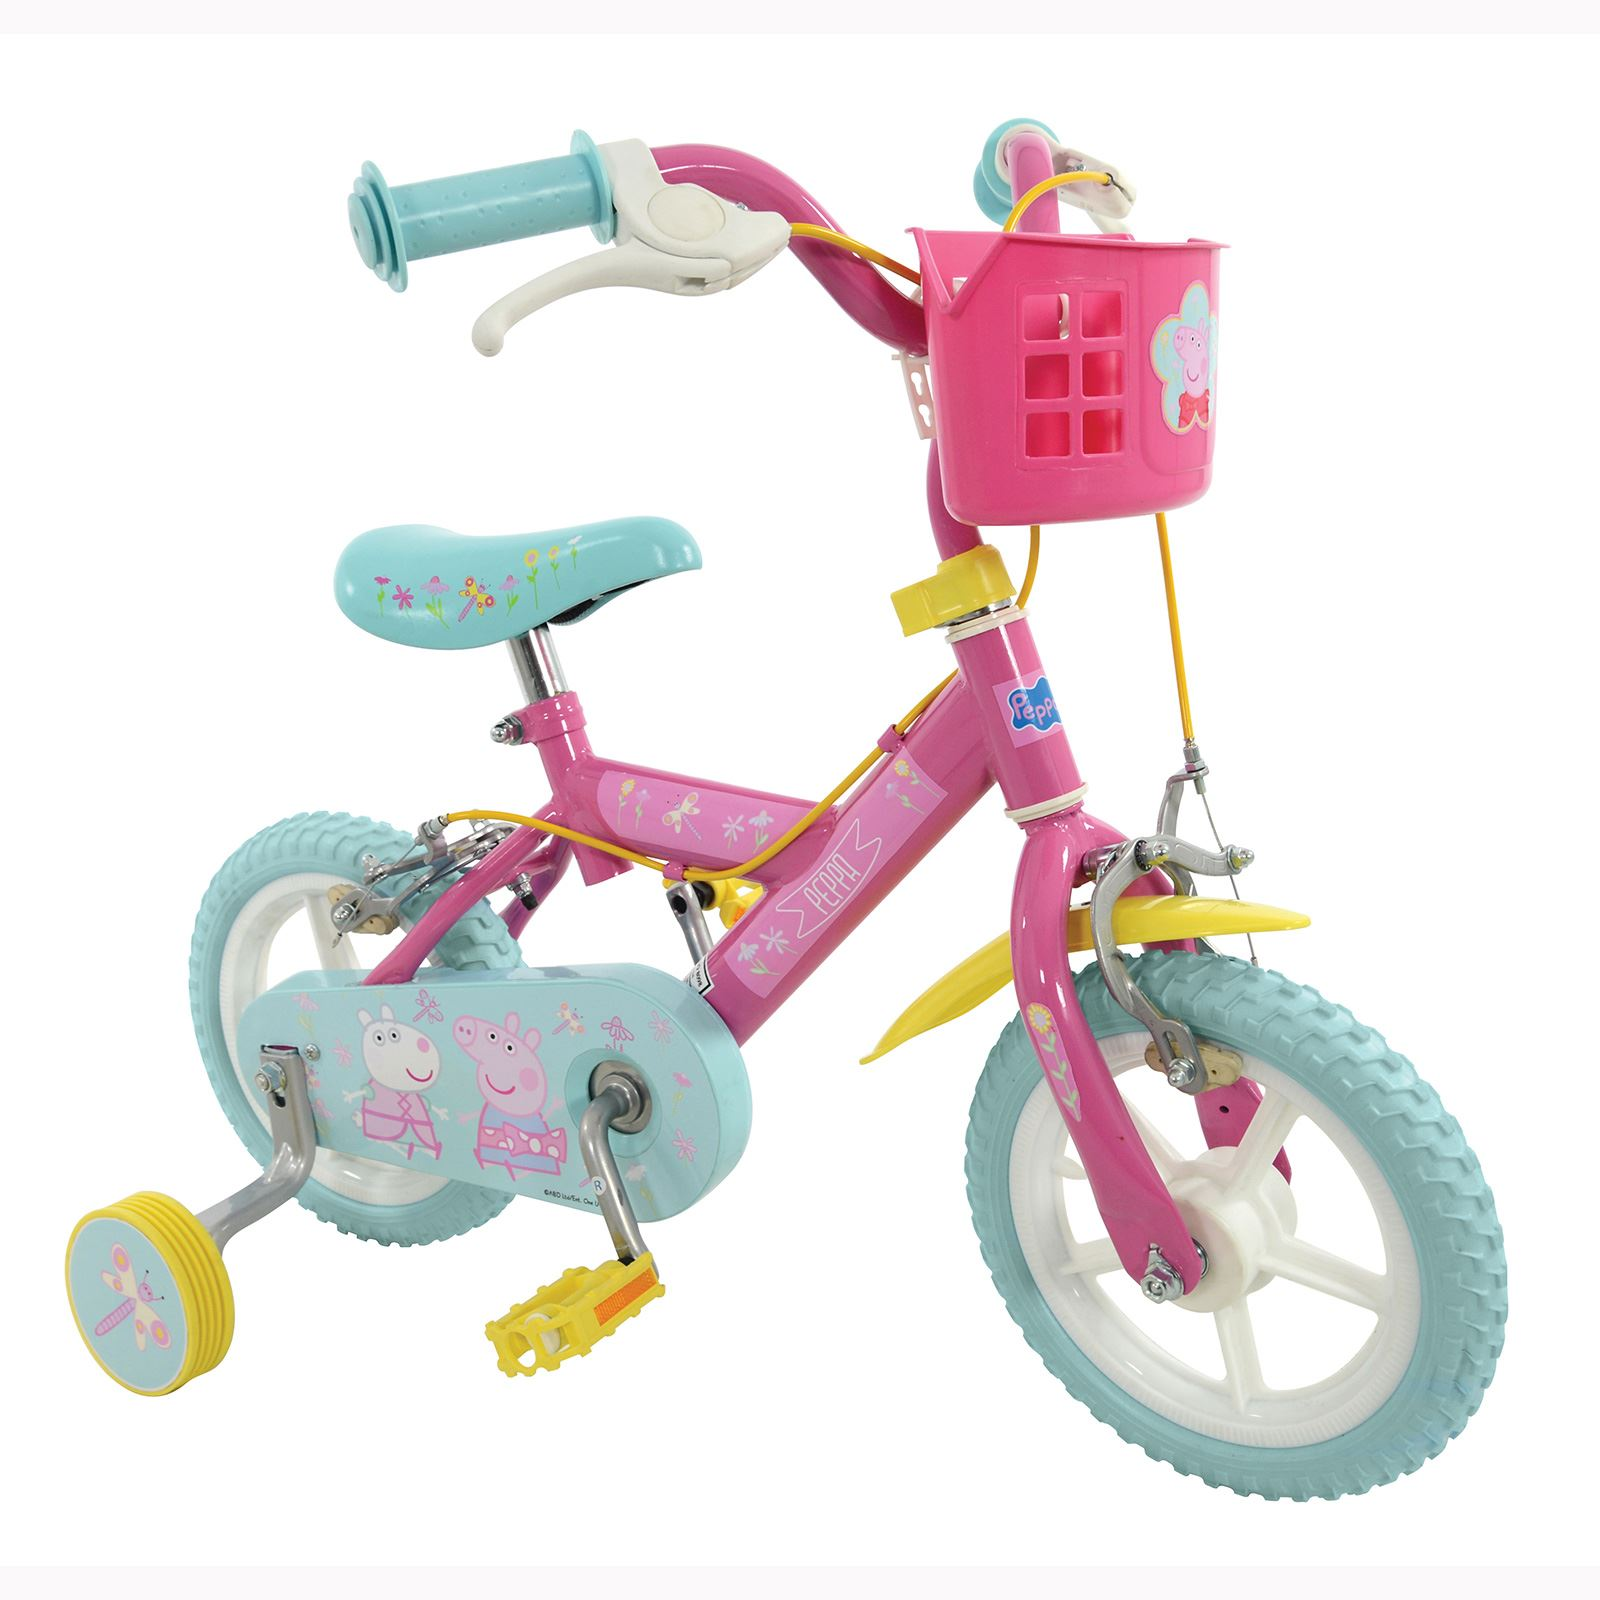 Details about peppa pig 12 quot bike bicycle girls pink with stabilisiers